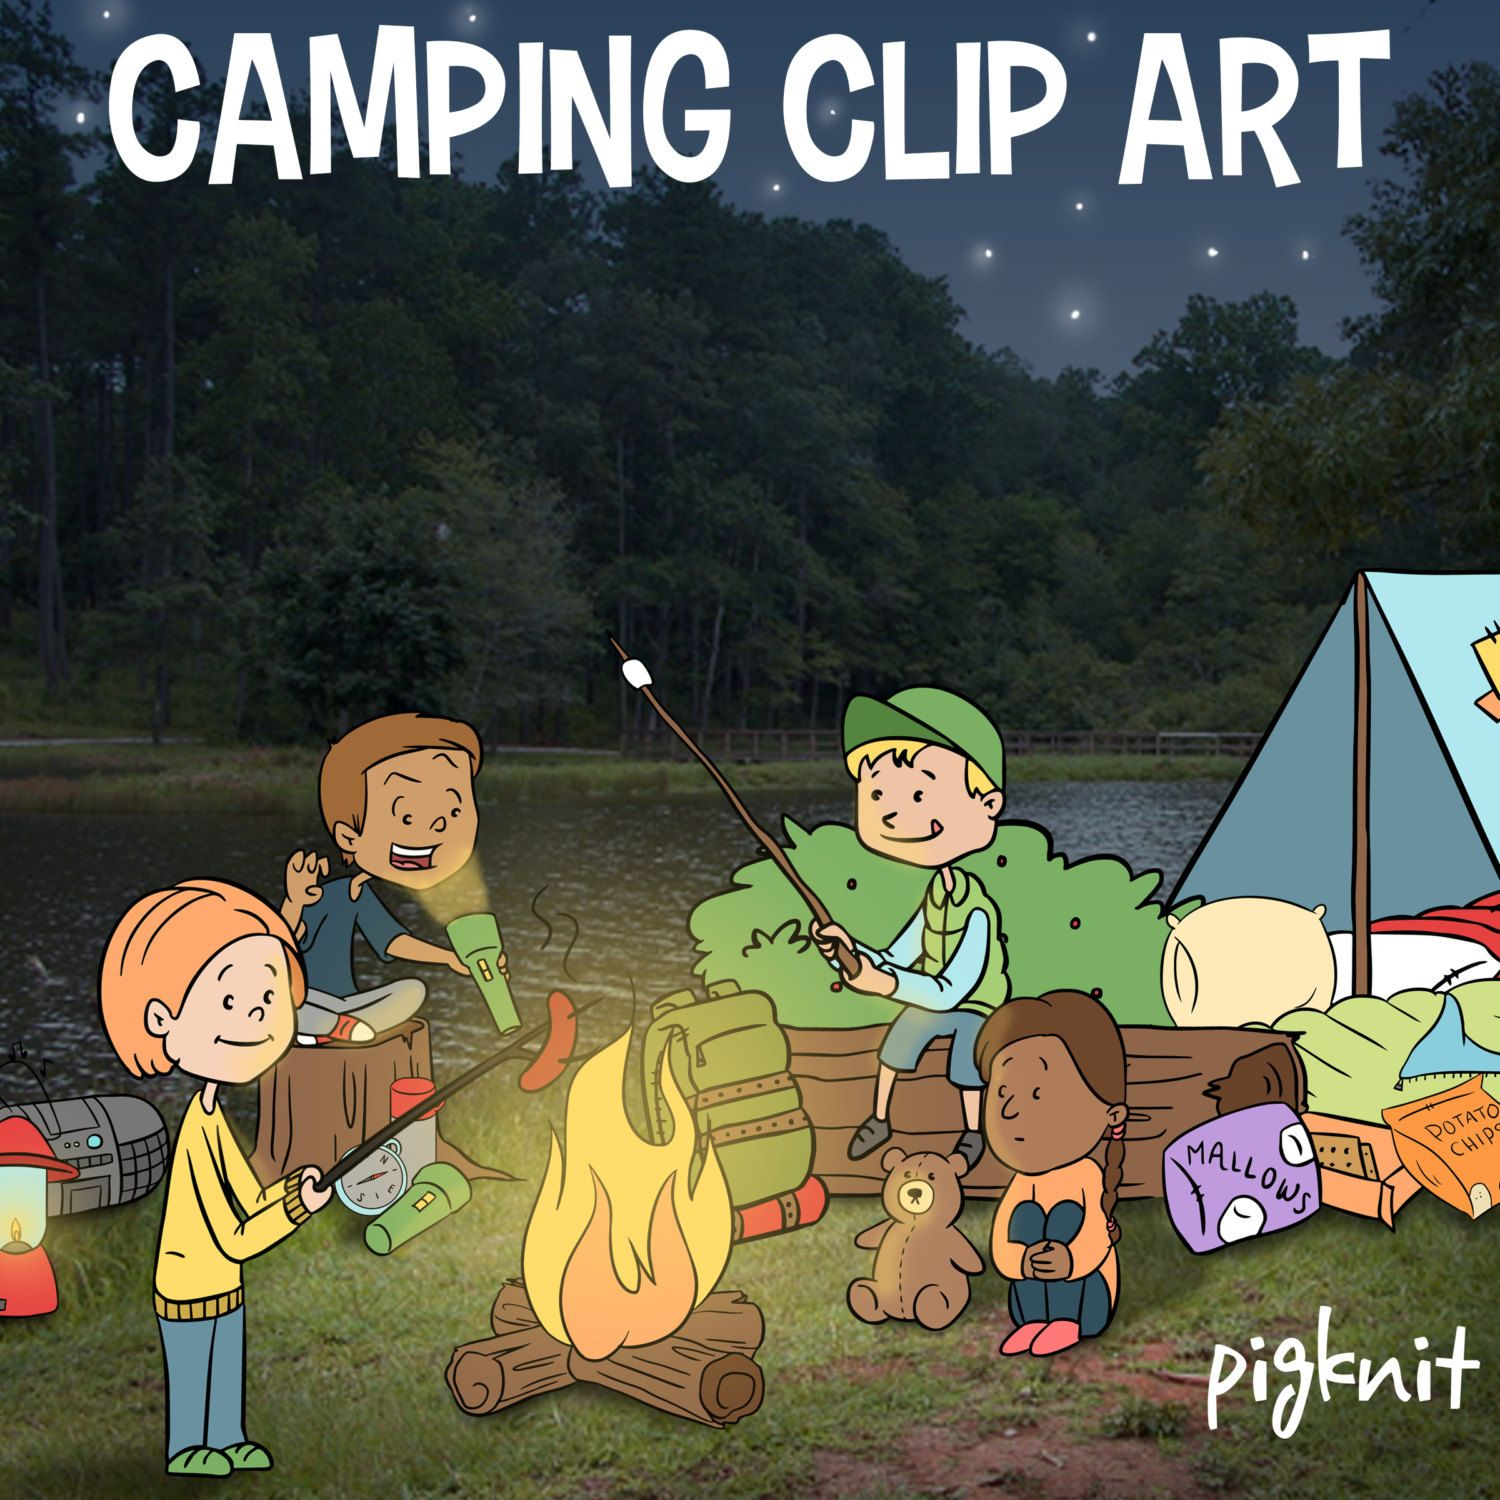 Camping clip art summer. Bag clipart camp